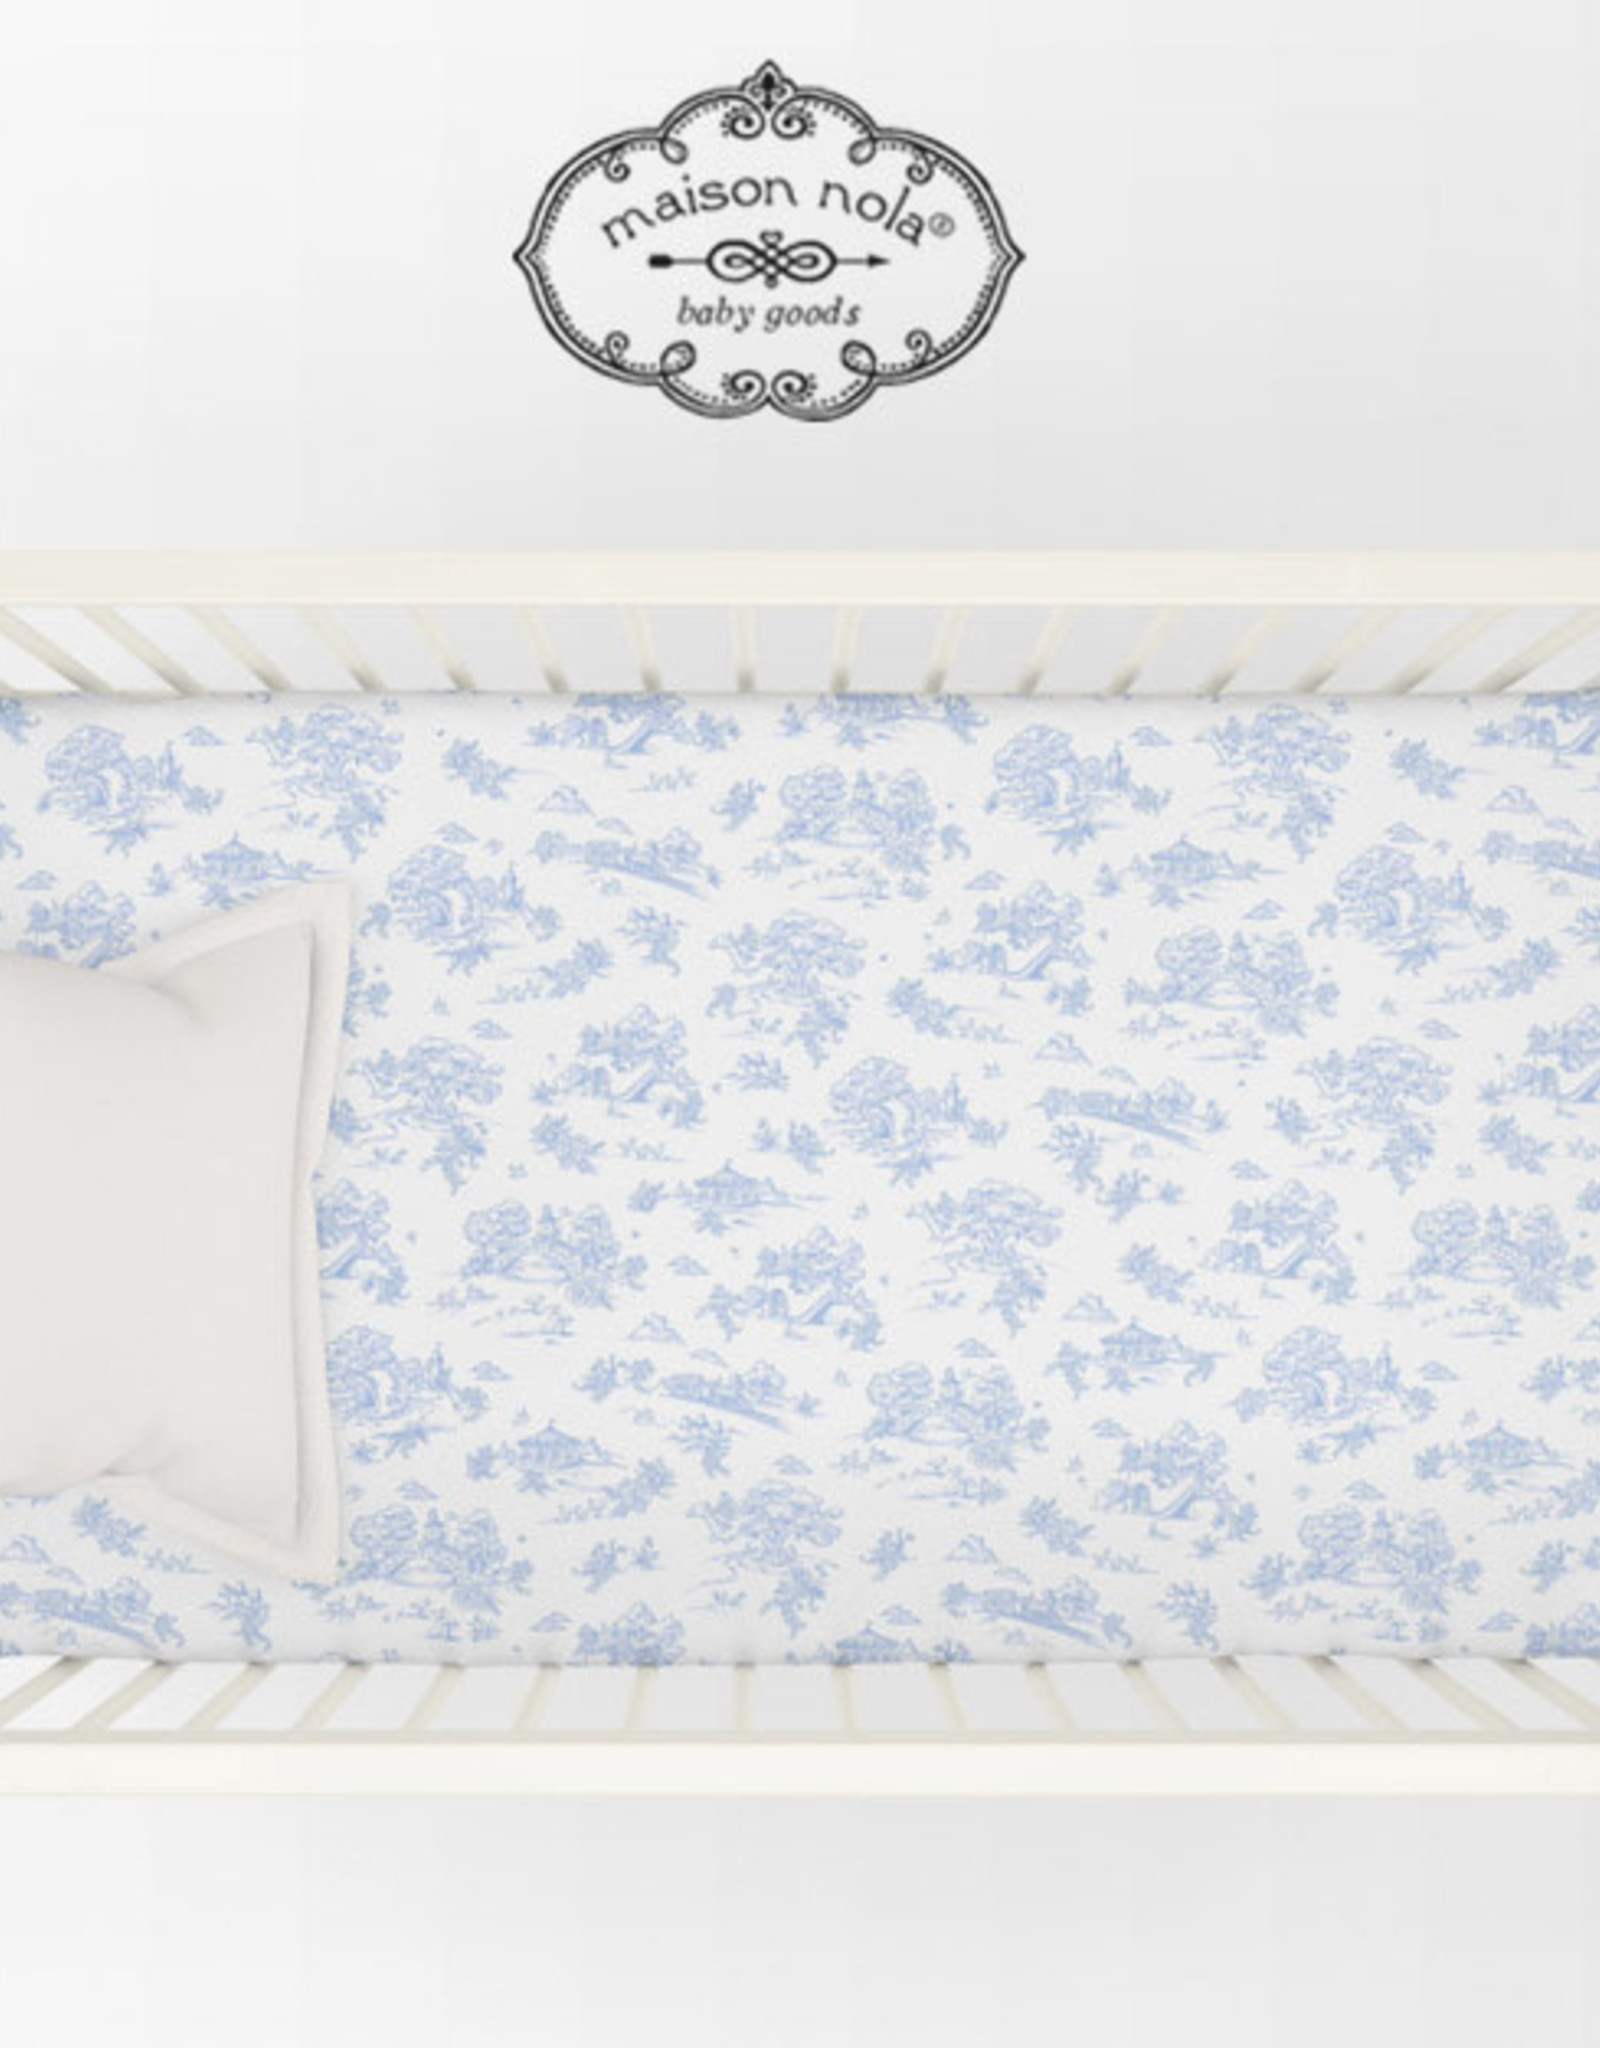 Maison Nola Toile Crib Sheet